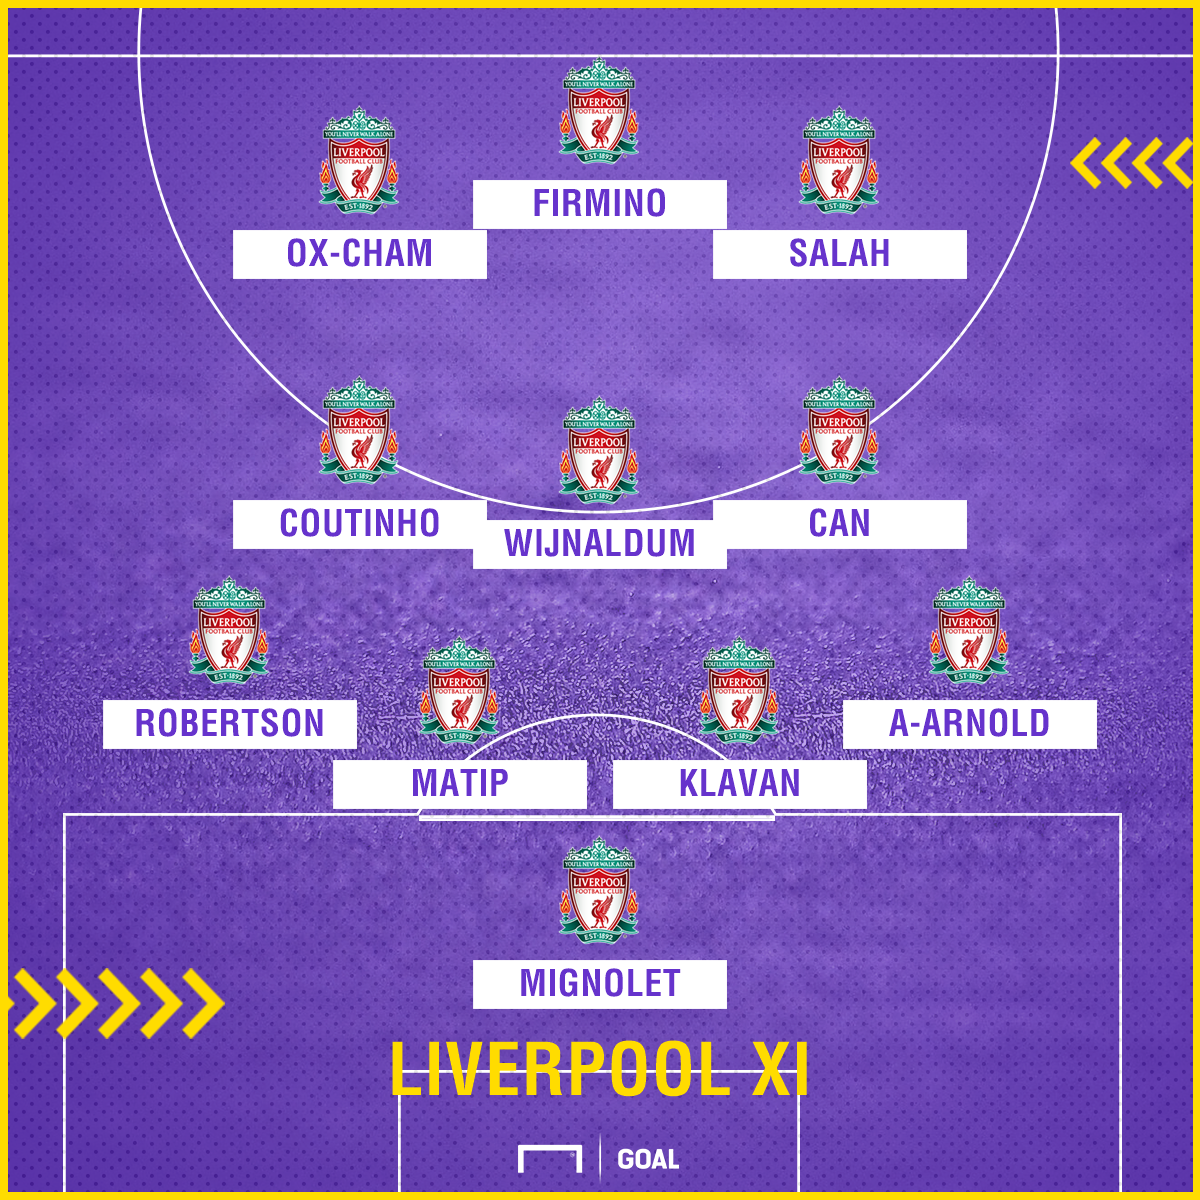 Liverpool XI vs Swansea GFX